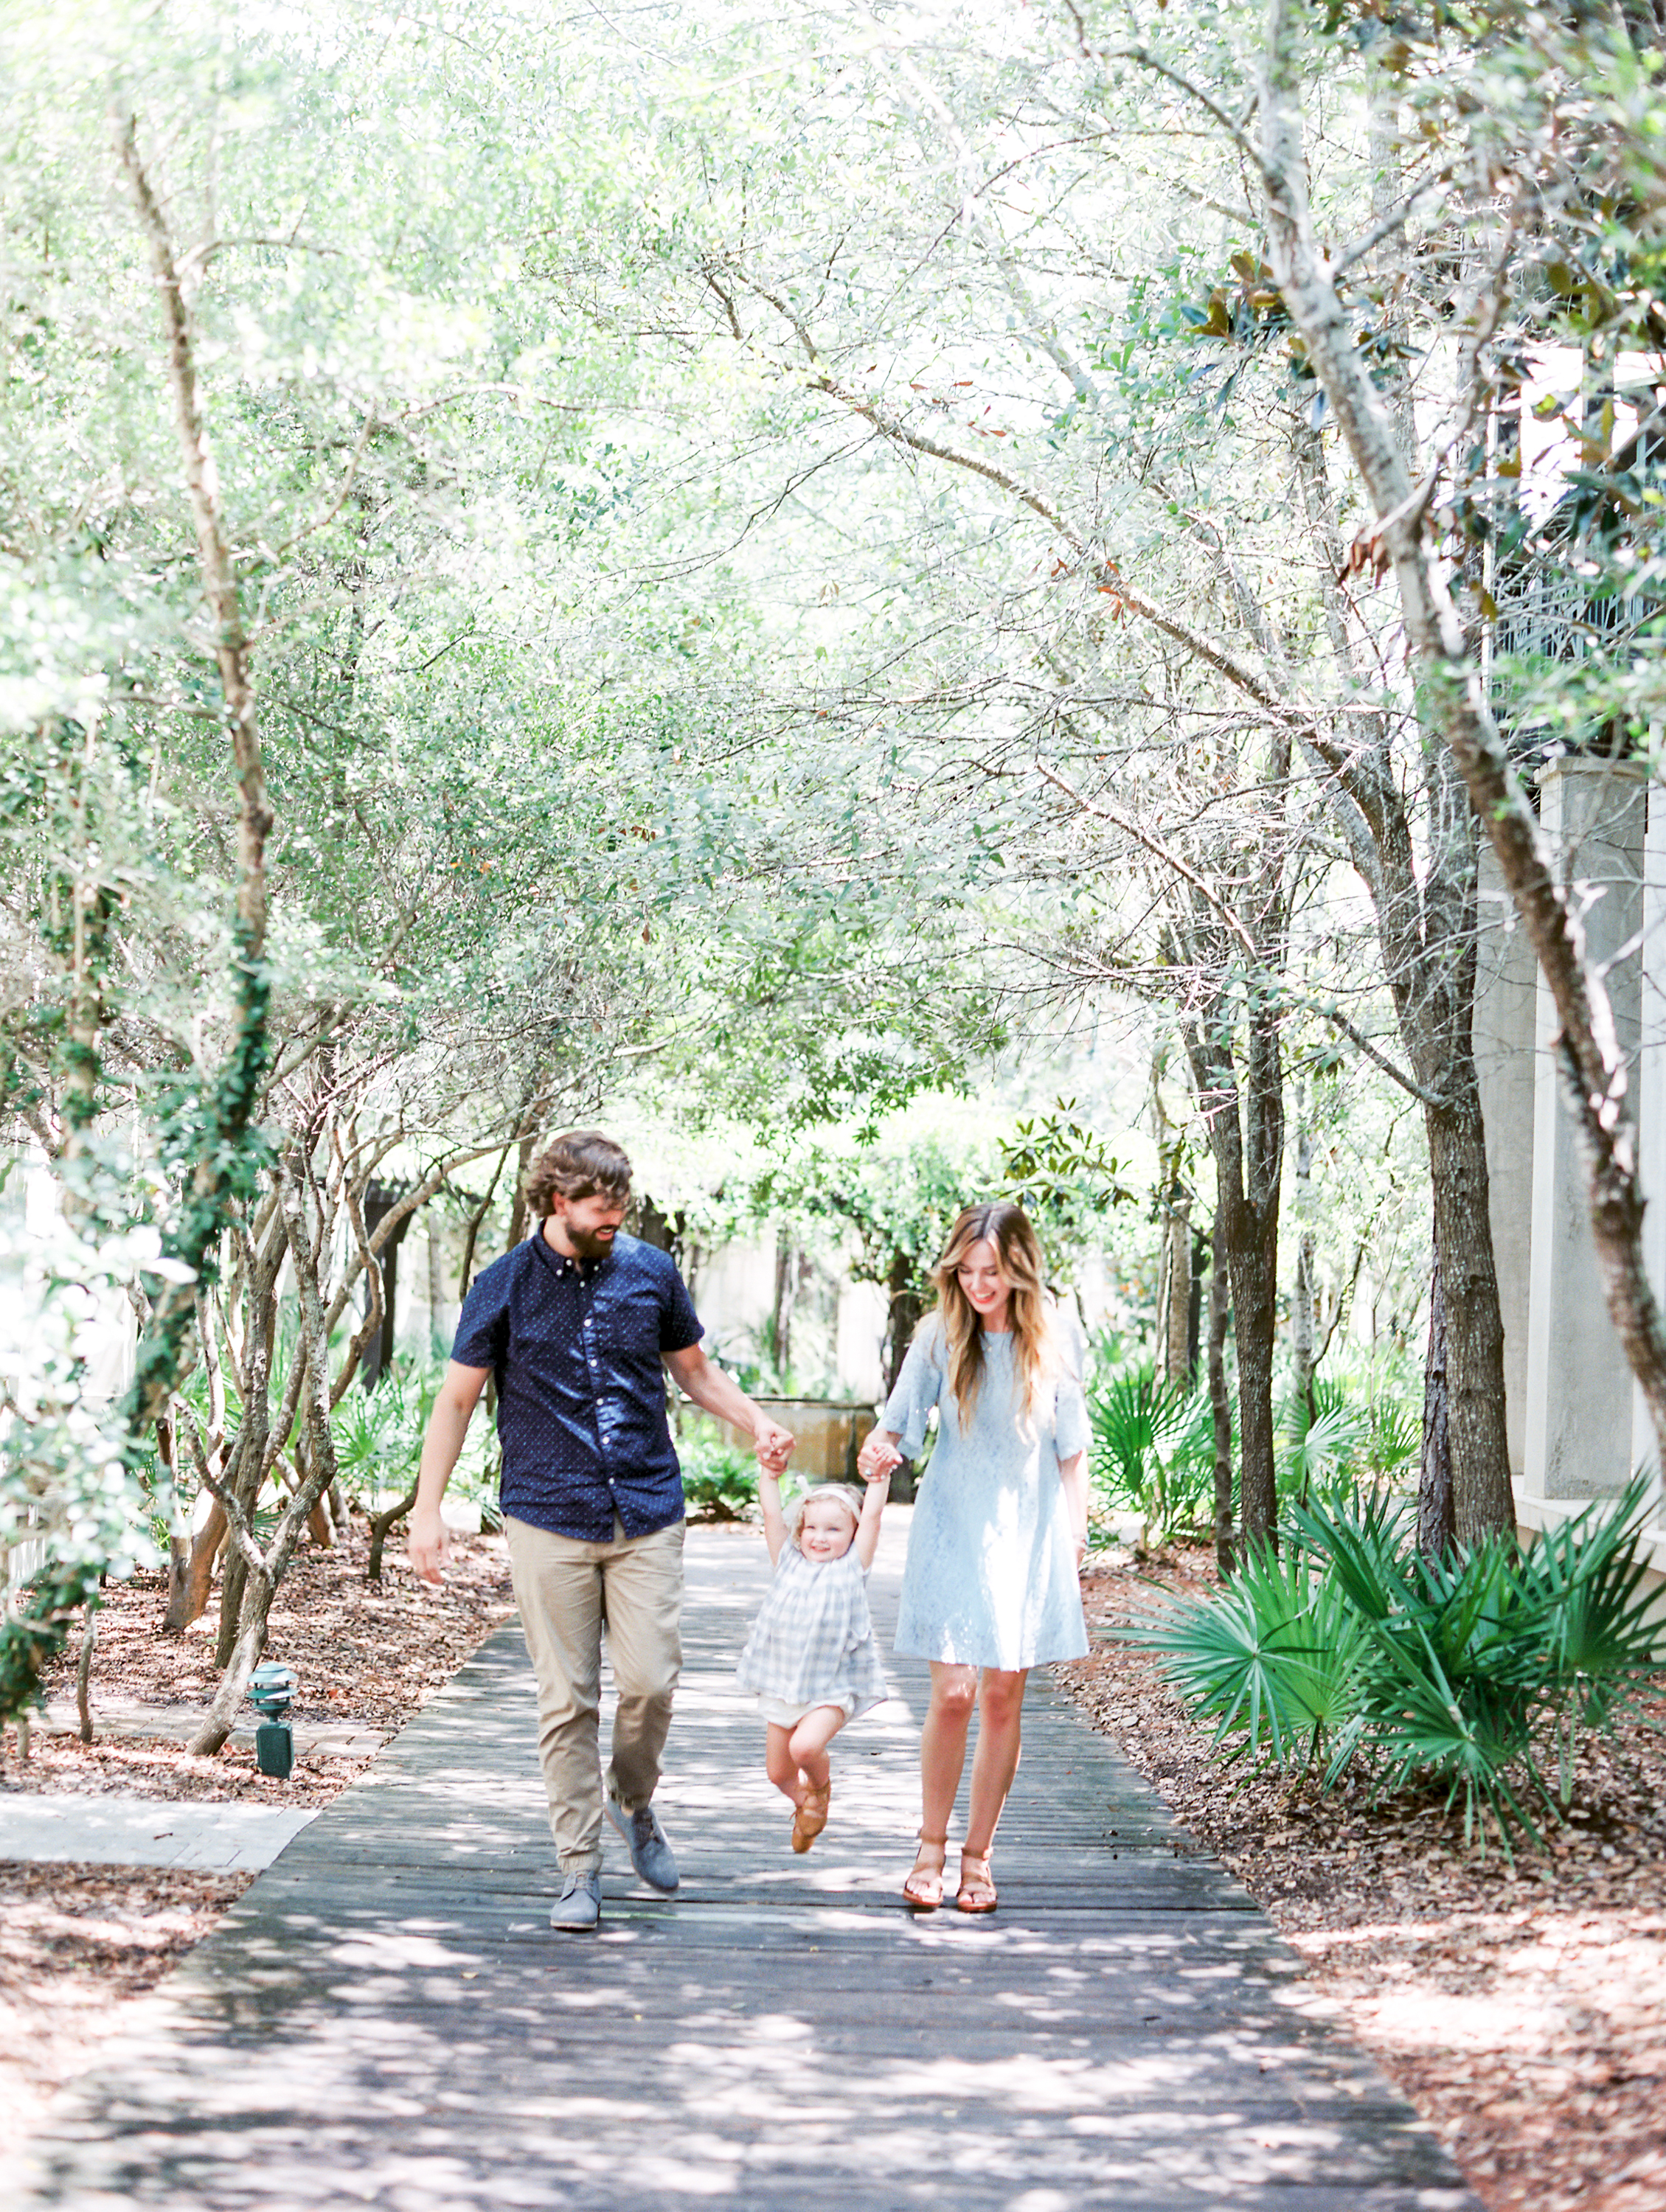 Exploring Rosemary Beach Florida as a family | Kaylie B. Poplin Photography | Rosemary Beach, FL Photographer